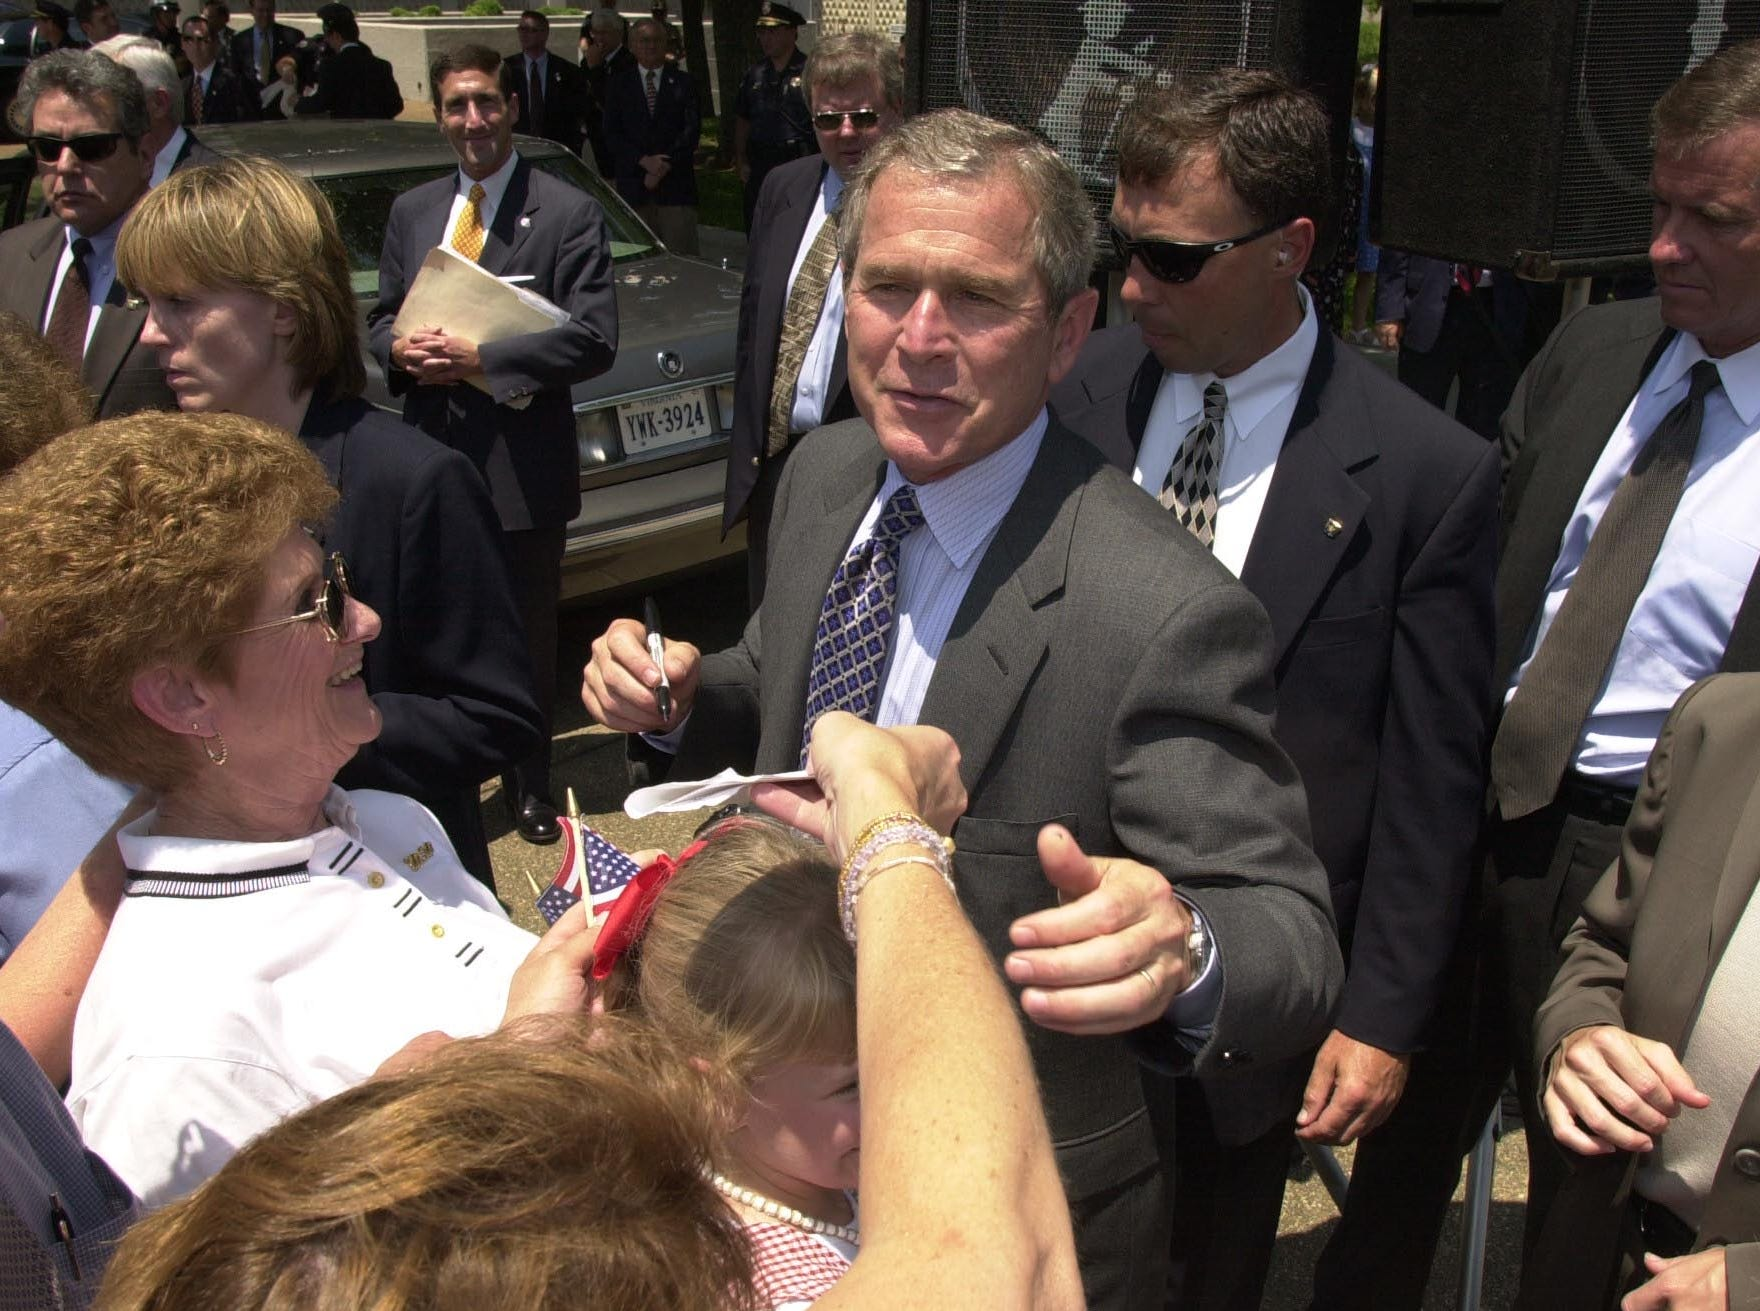 Texas Governor George W. Bush talks to supporters and signs autographs during his campaign stop Thursday at the Civic Auditorium Plaza.  2000.